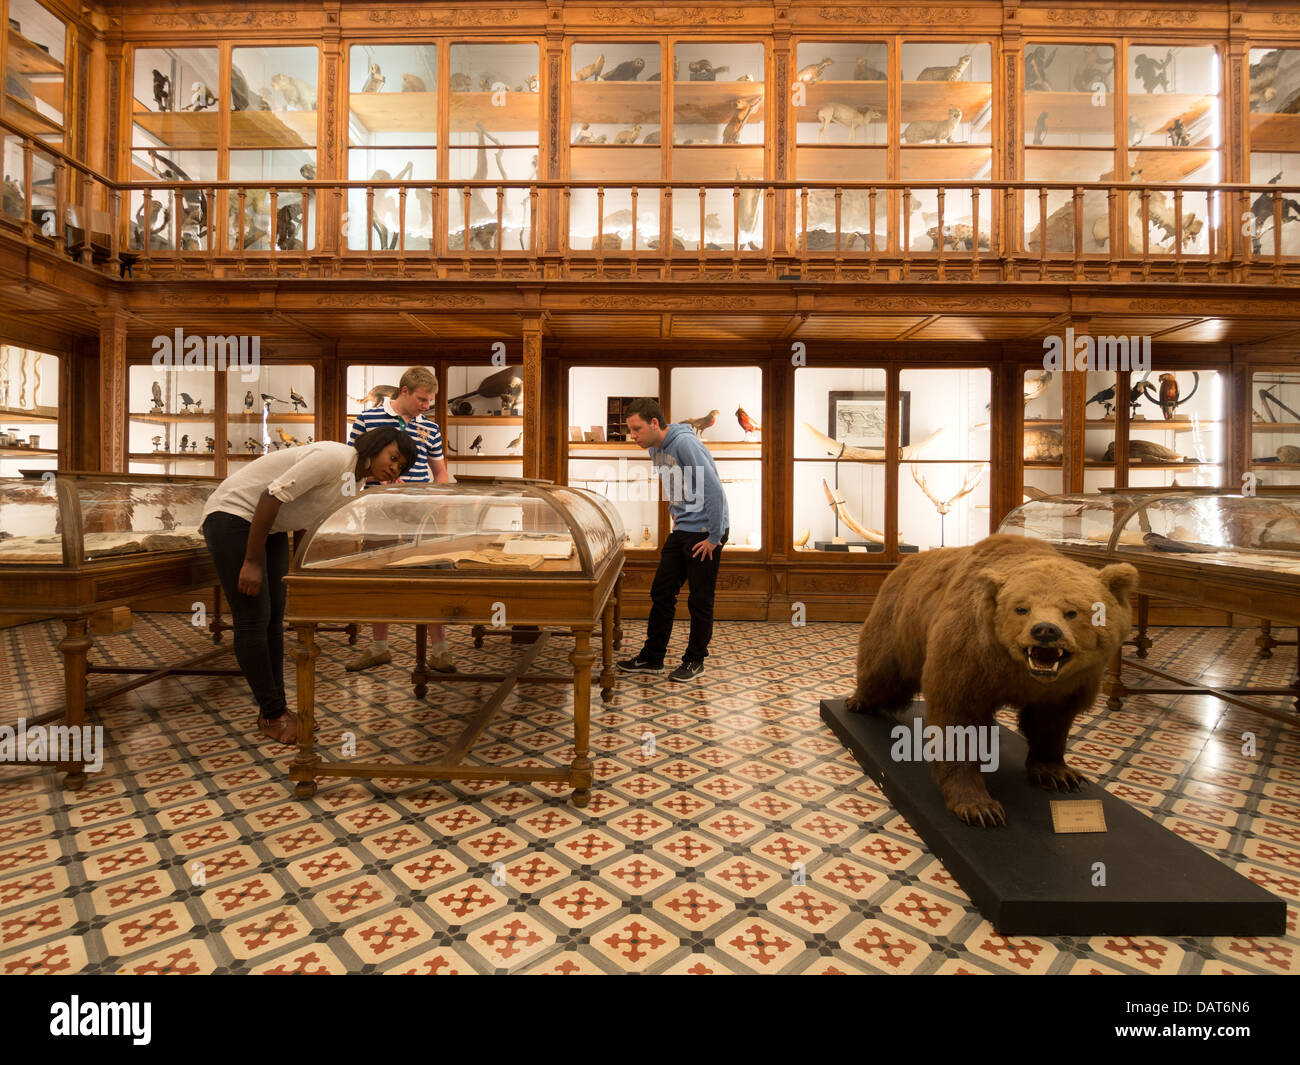 Museu de Zoologia (zoology museum) in Coimbra, Portugal, Europe - Stock Image